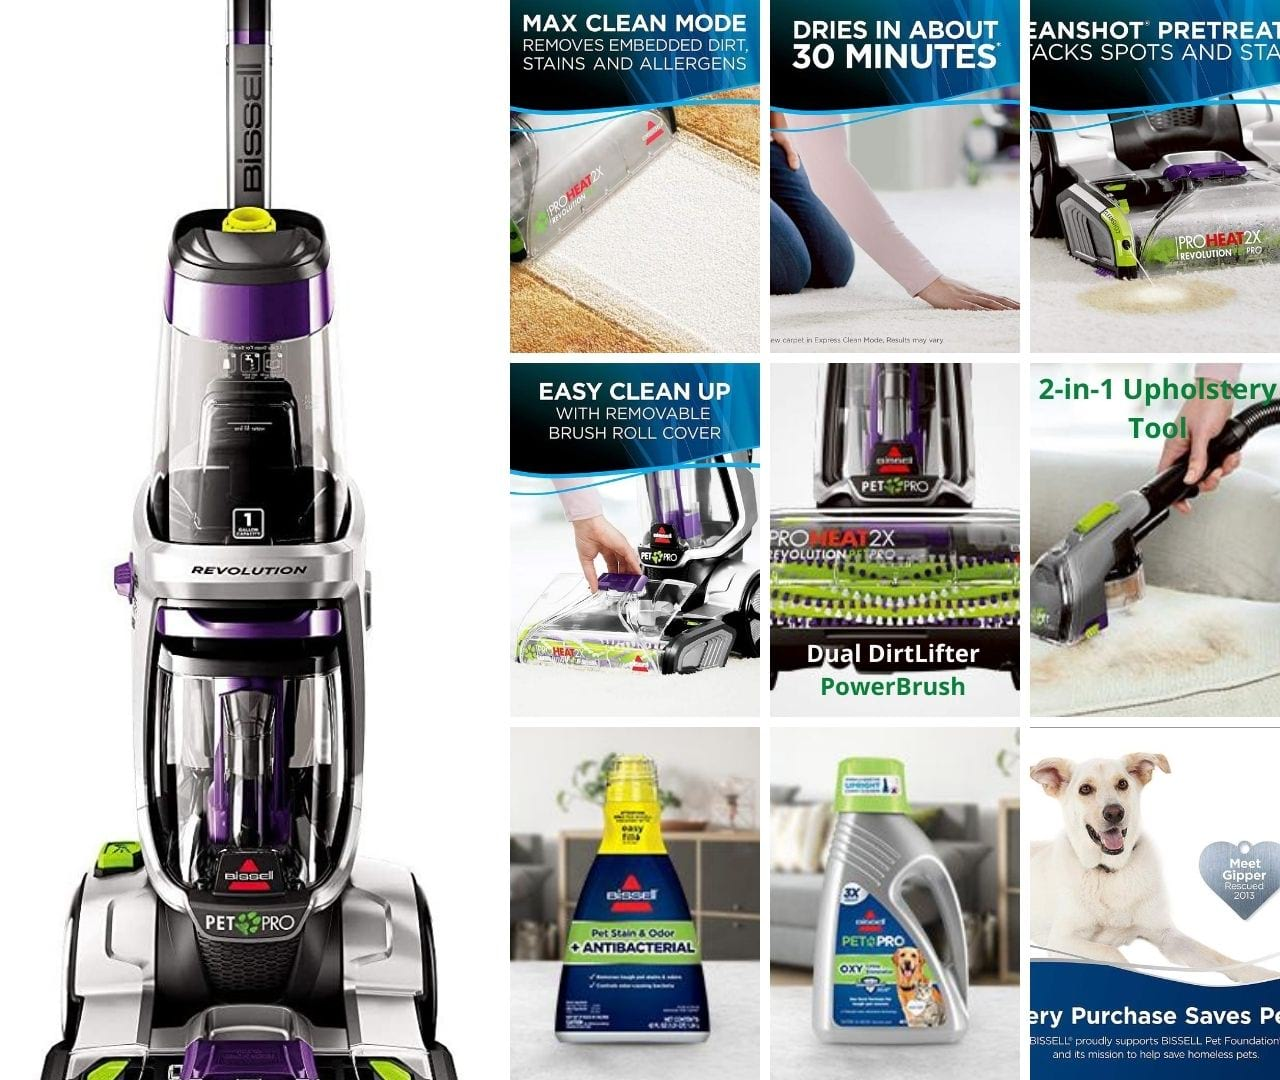 ProHeat carpet cleaner features